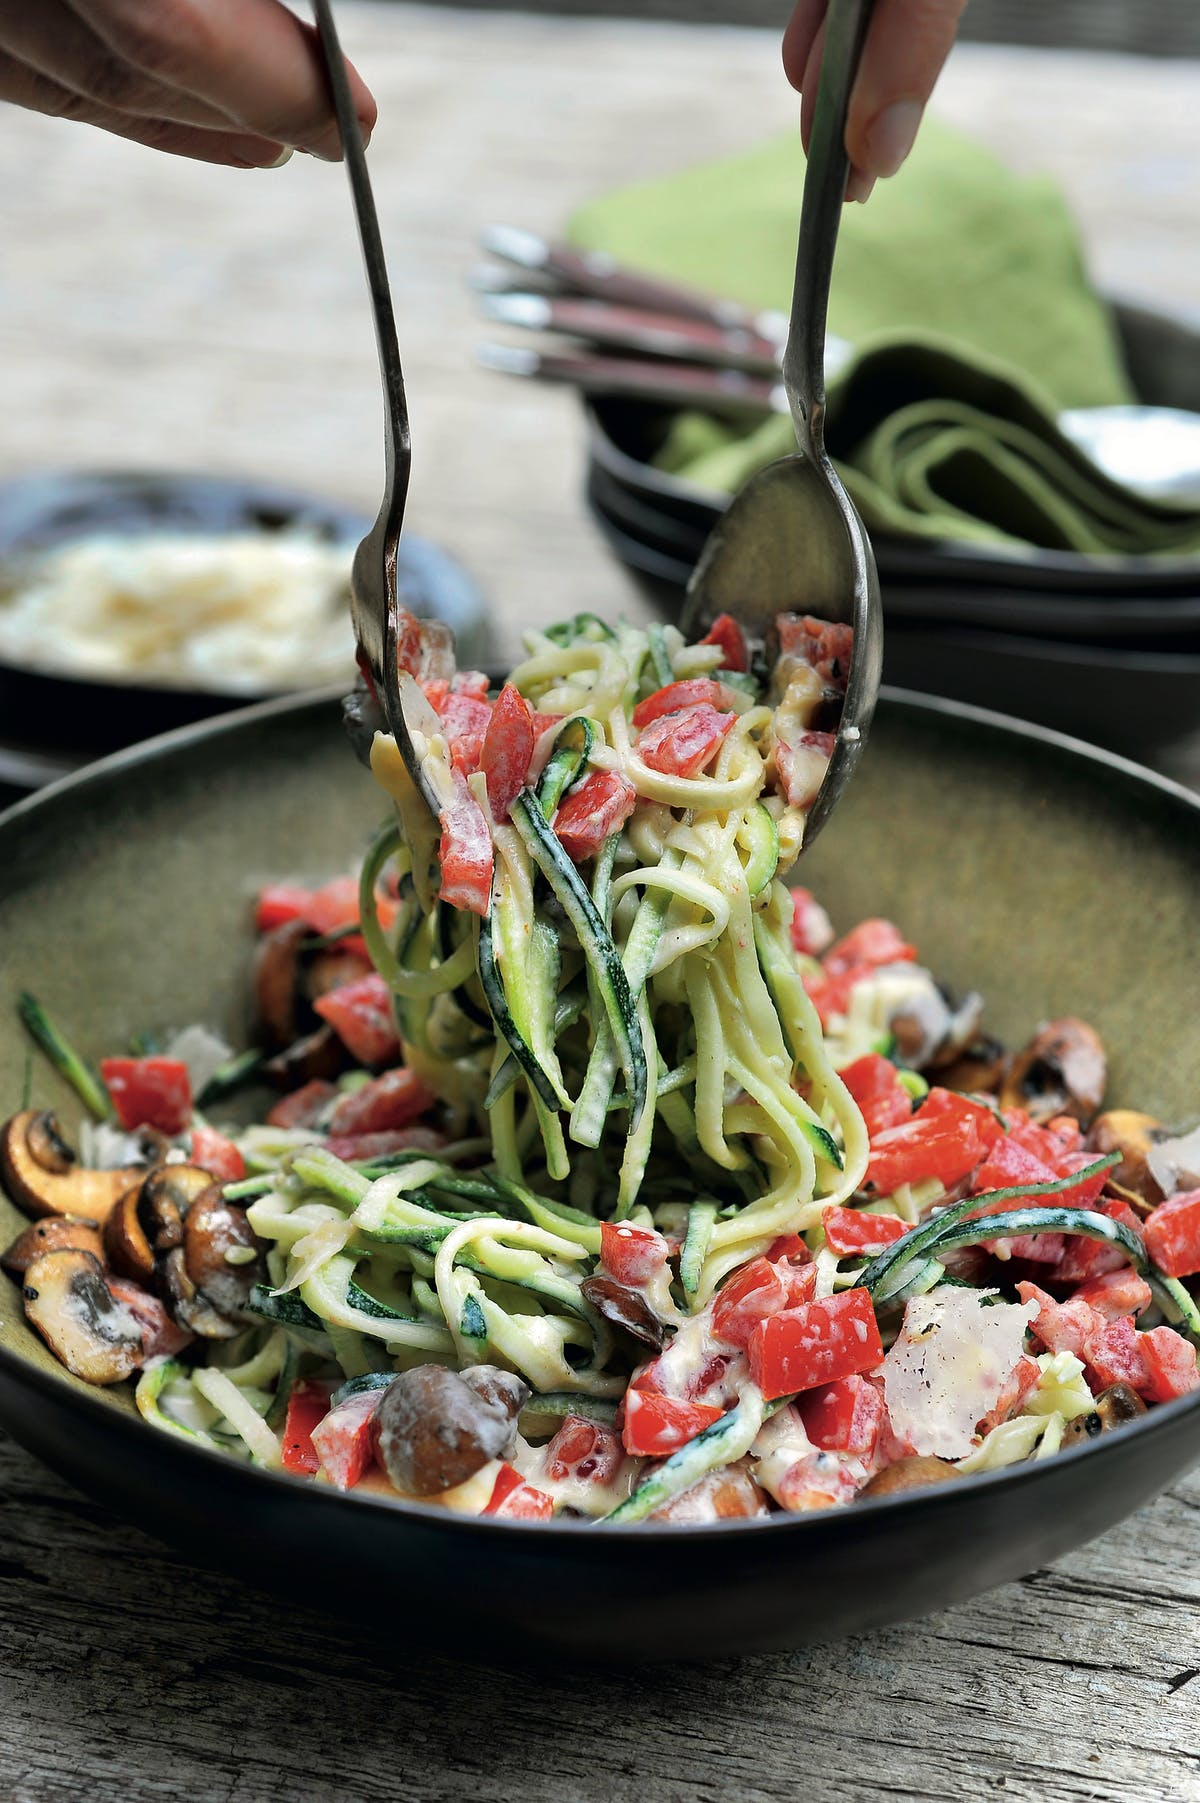 Zucchini noodles with tomatoes, mushrooms and Parmesan sauce